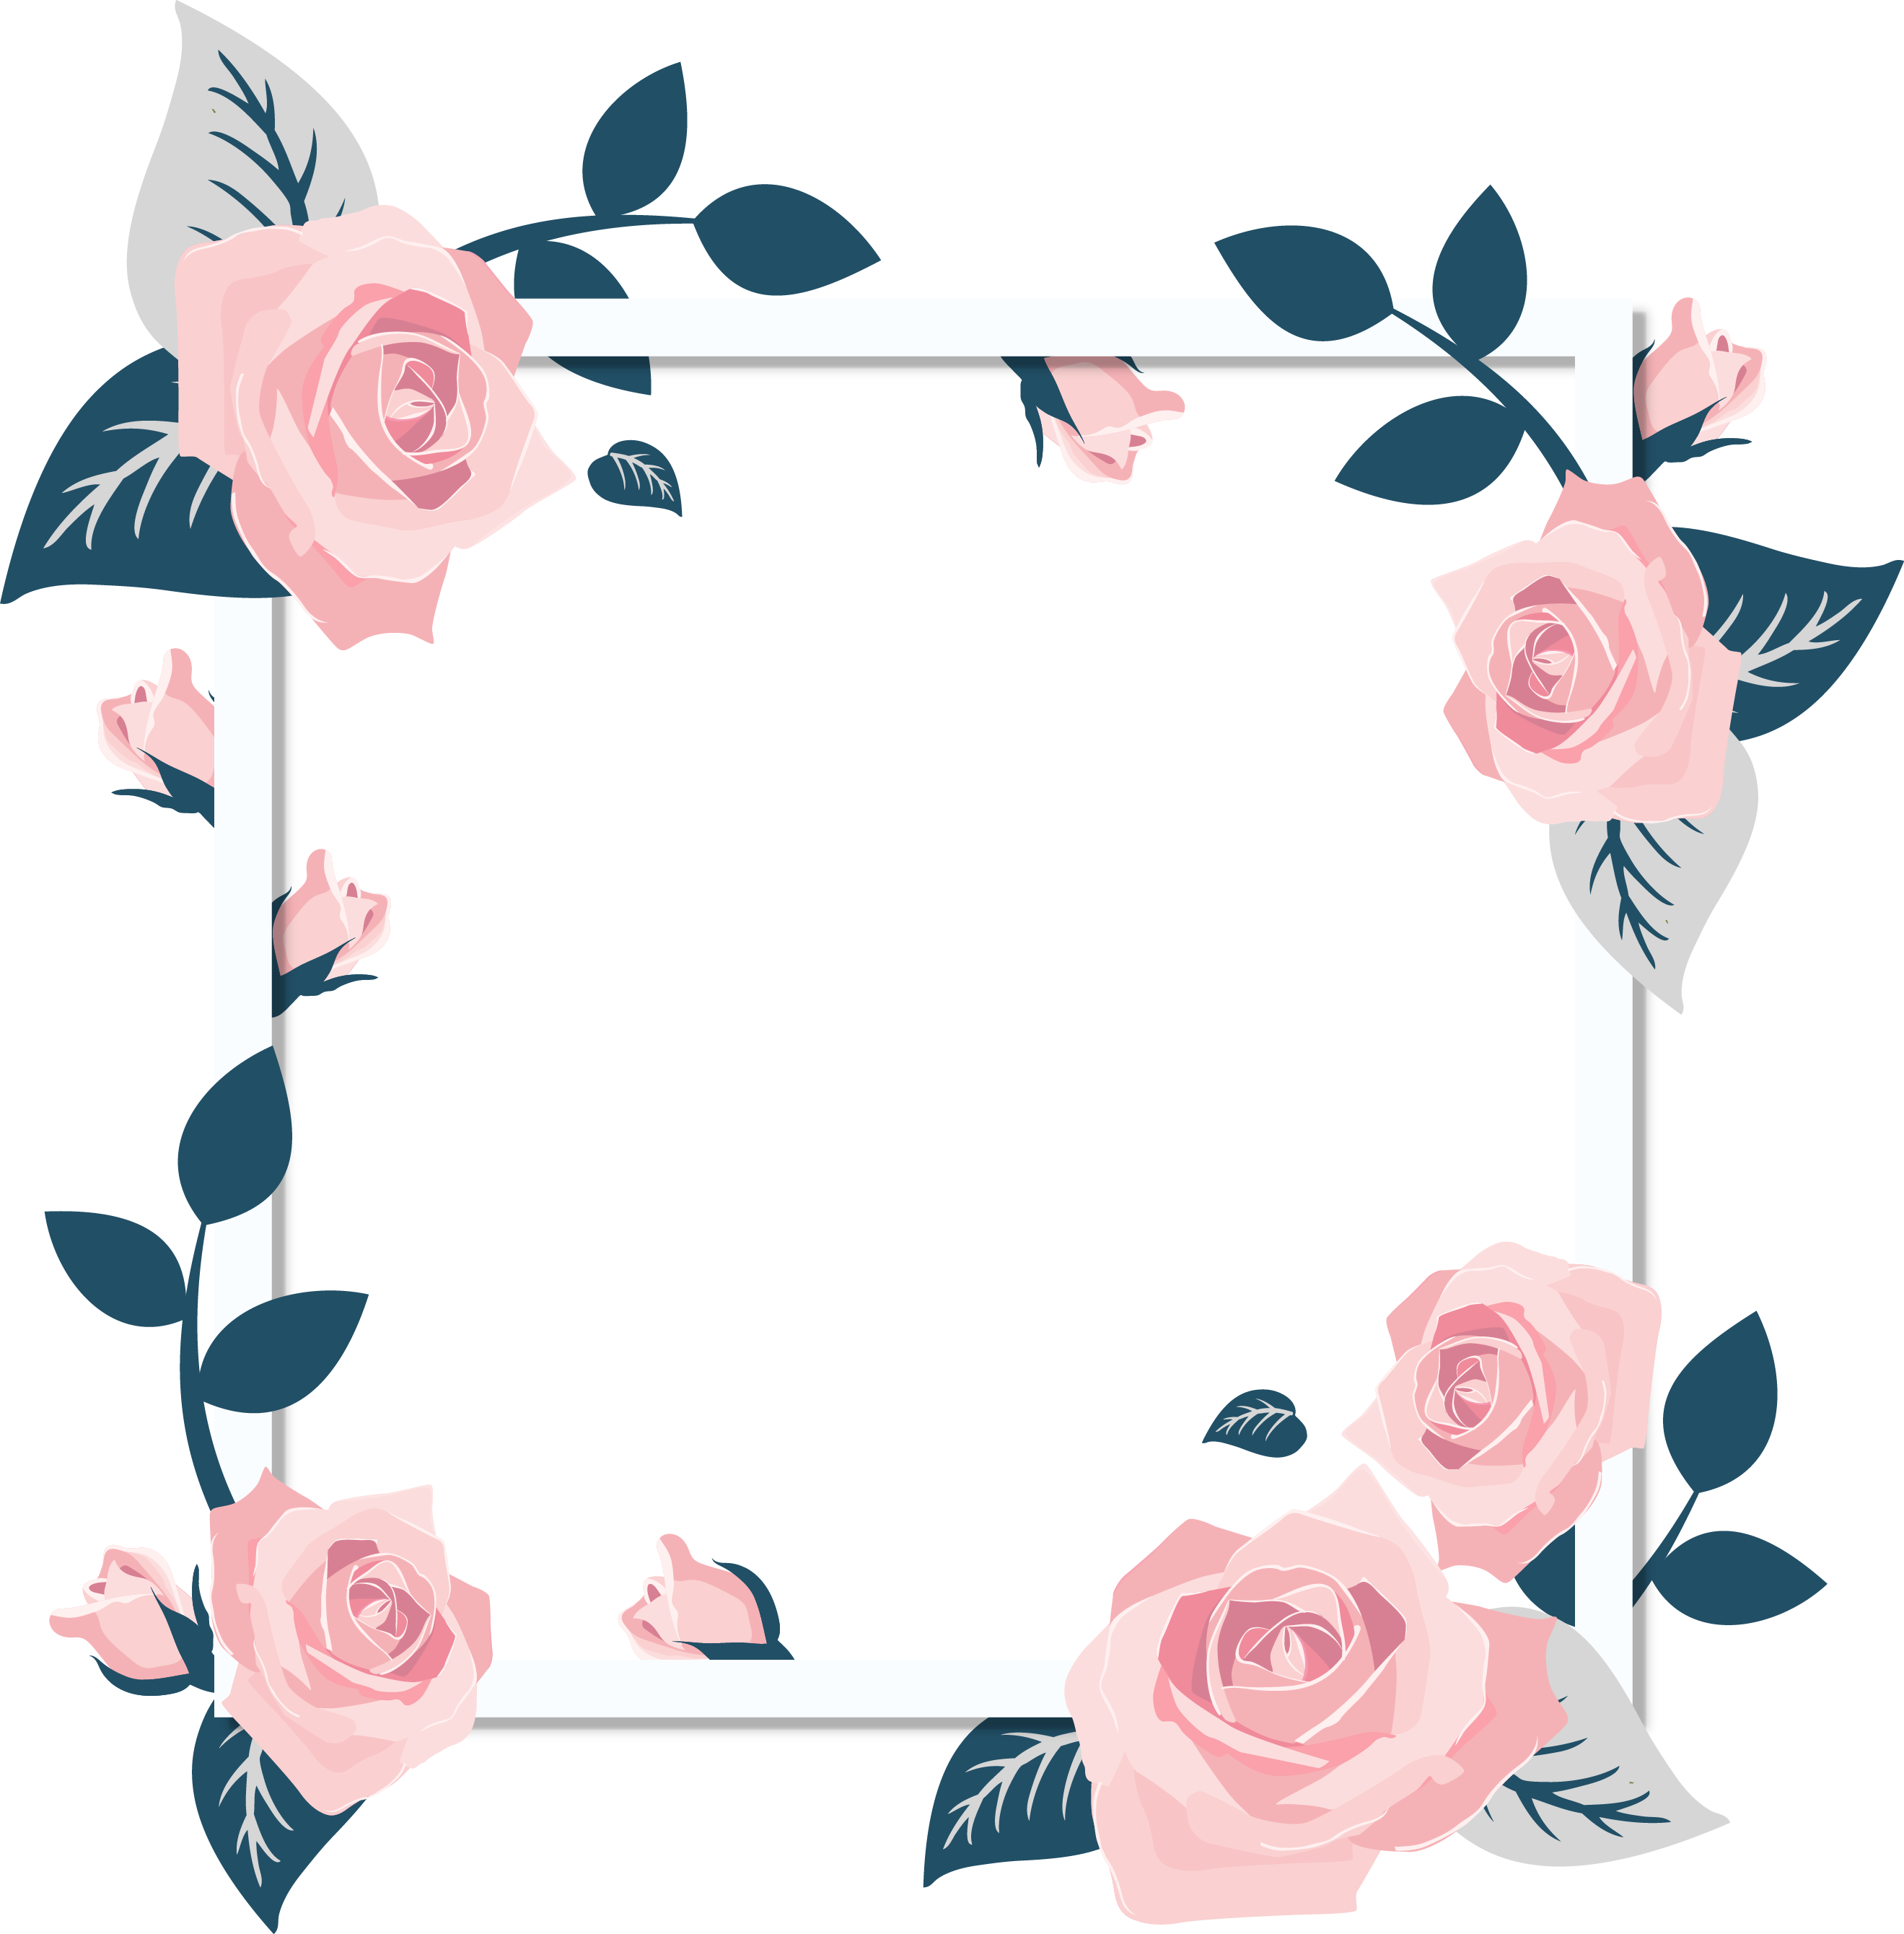 Frame photo png. Rose images a flower